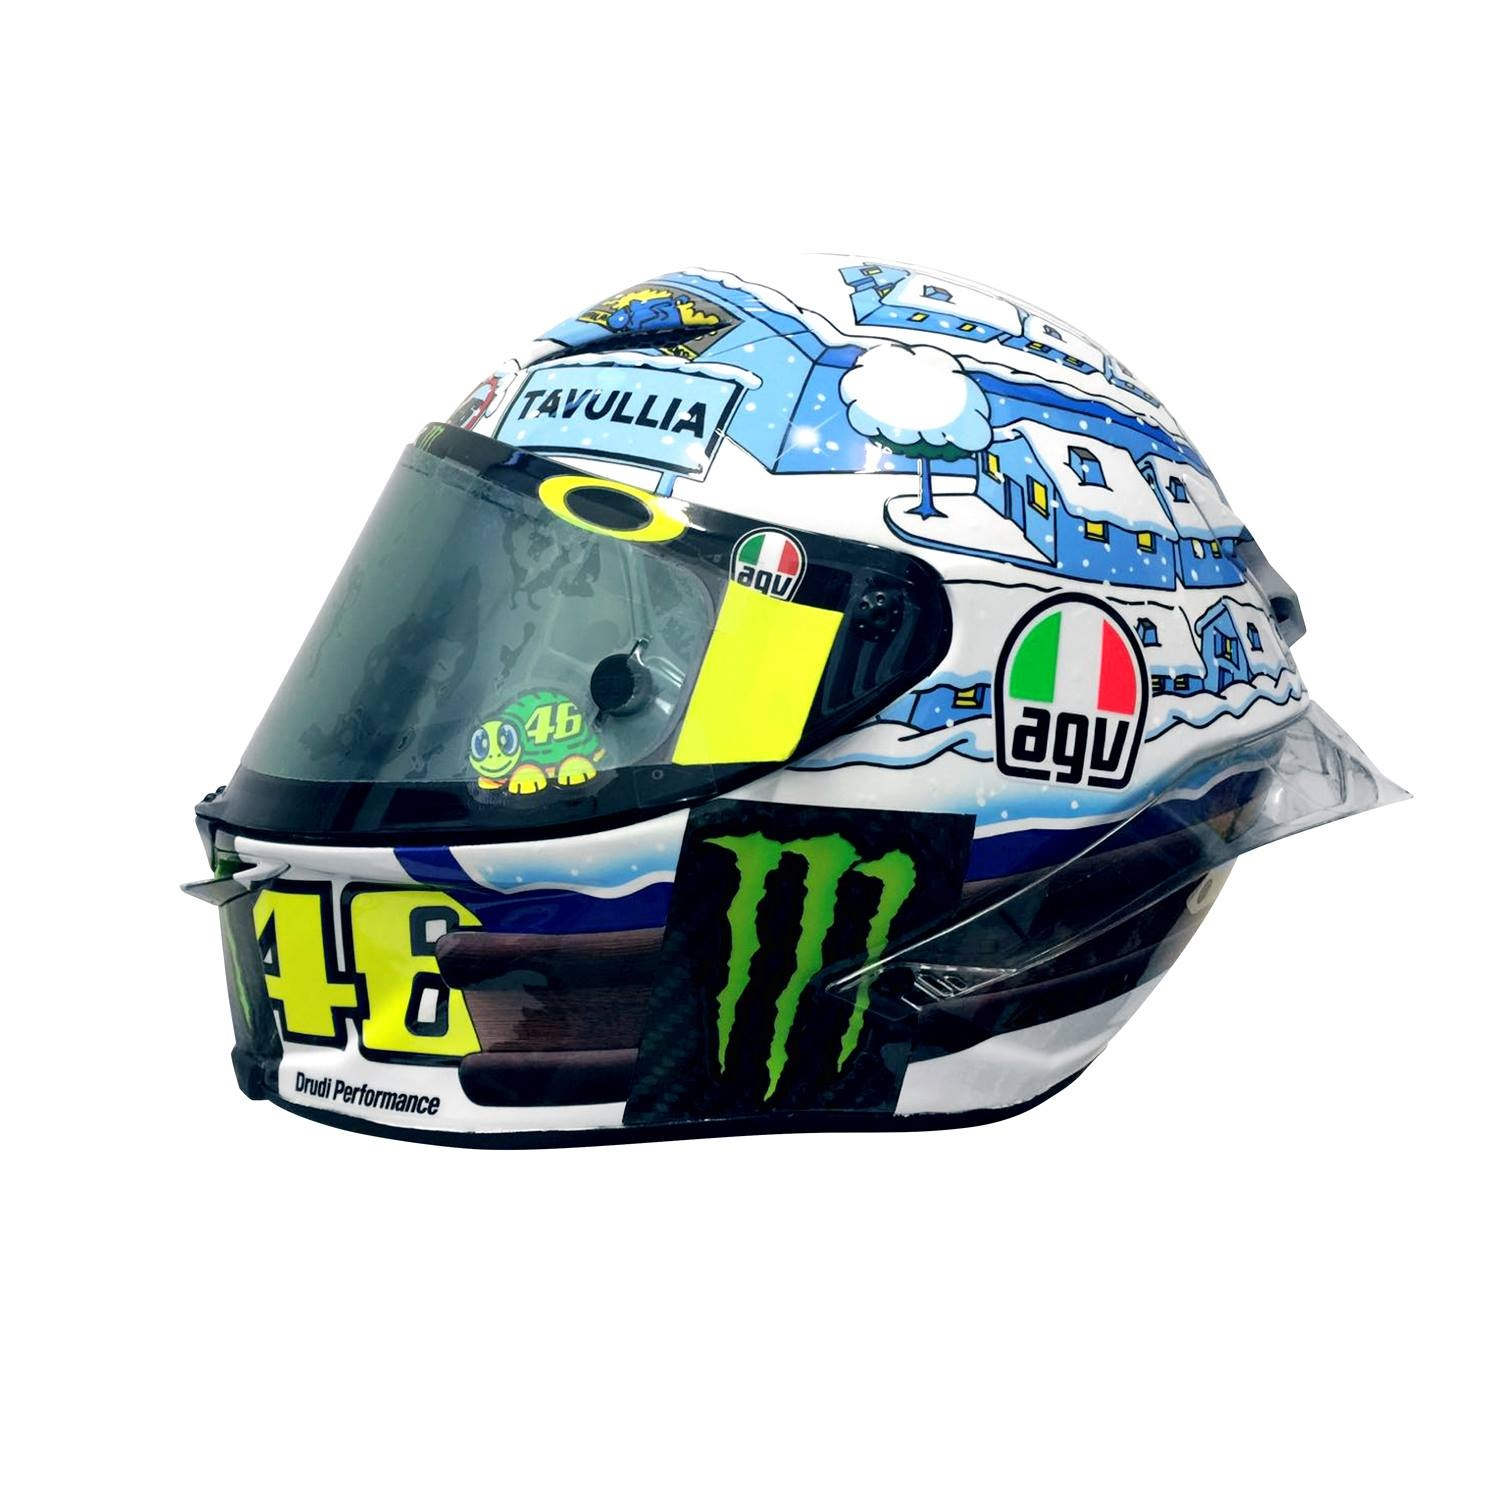 champion helmets agv pista gp r winter test 2017 rossi helmet. Black Bedroom Furniture Sets. Home Design Ideas